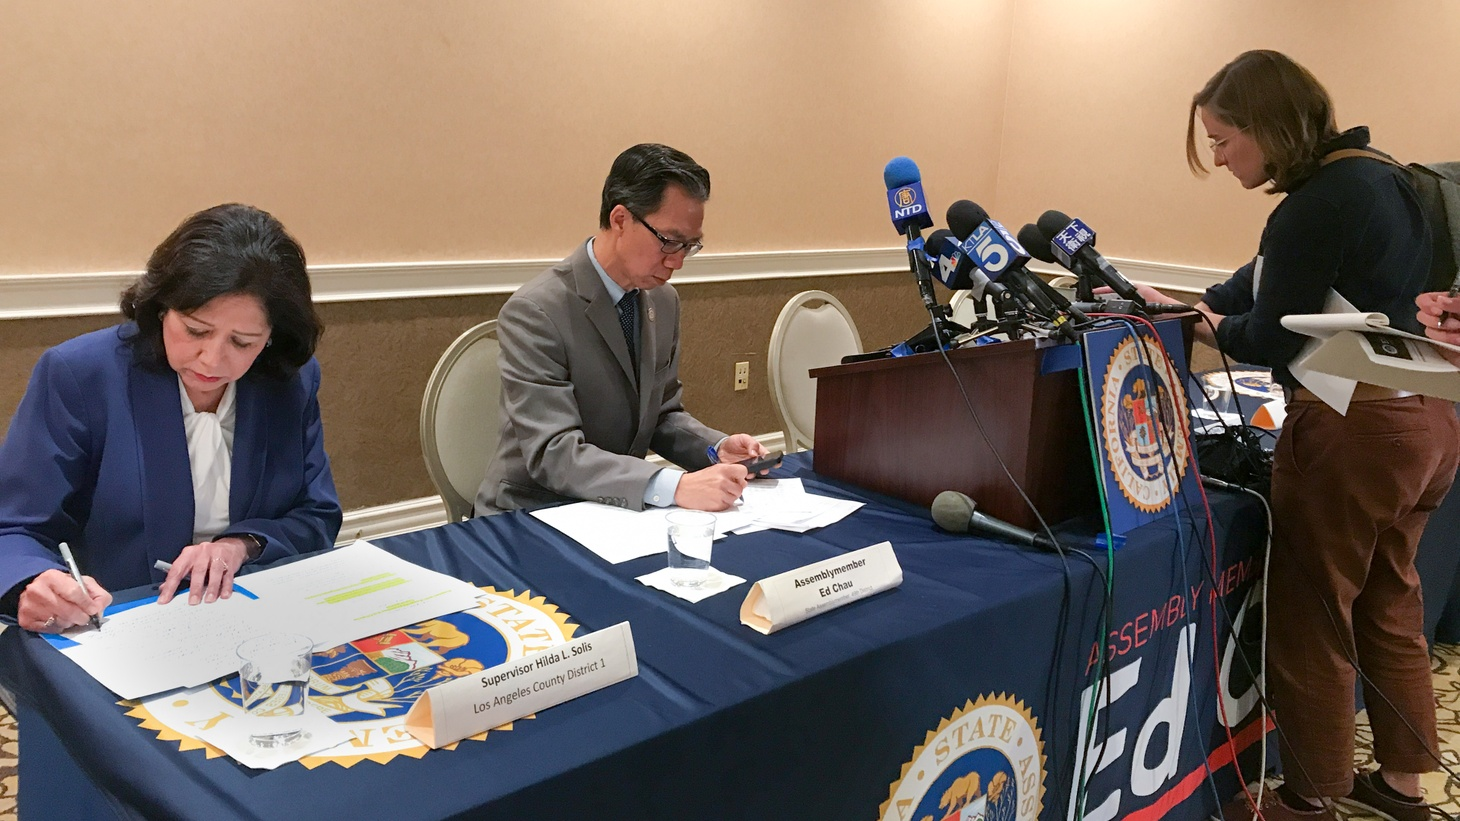 Democrat Ed Chau hosted a recent meeting on the coronavirus at the Hilton San Gabriel Hotel. Chinese media and others were present.